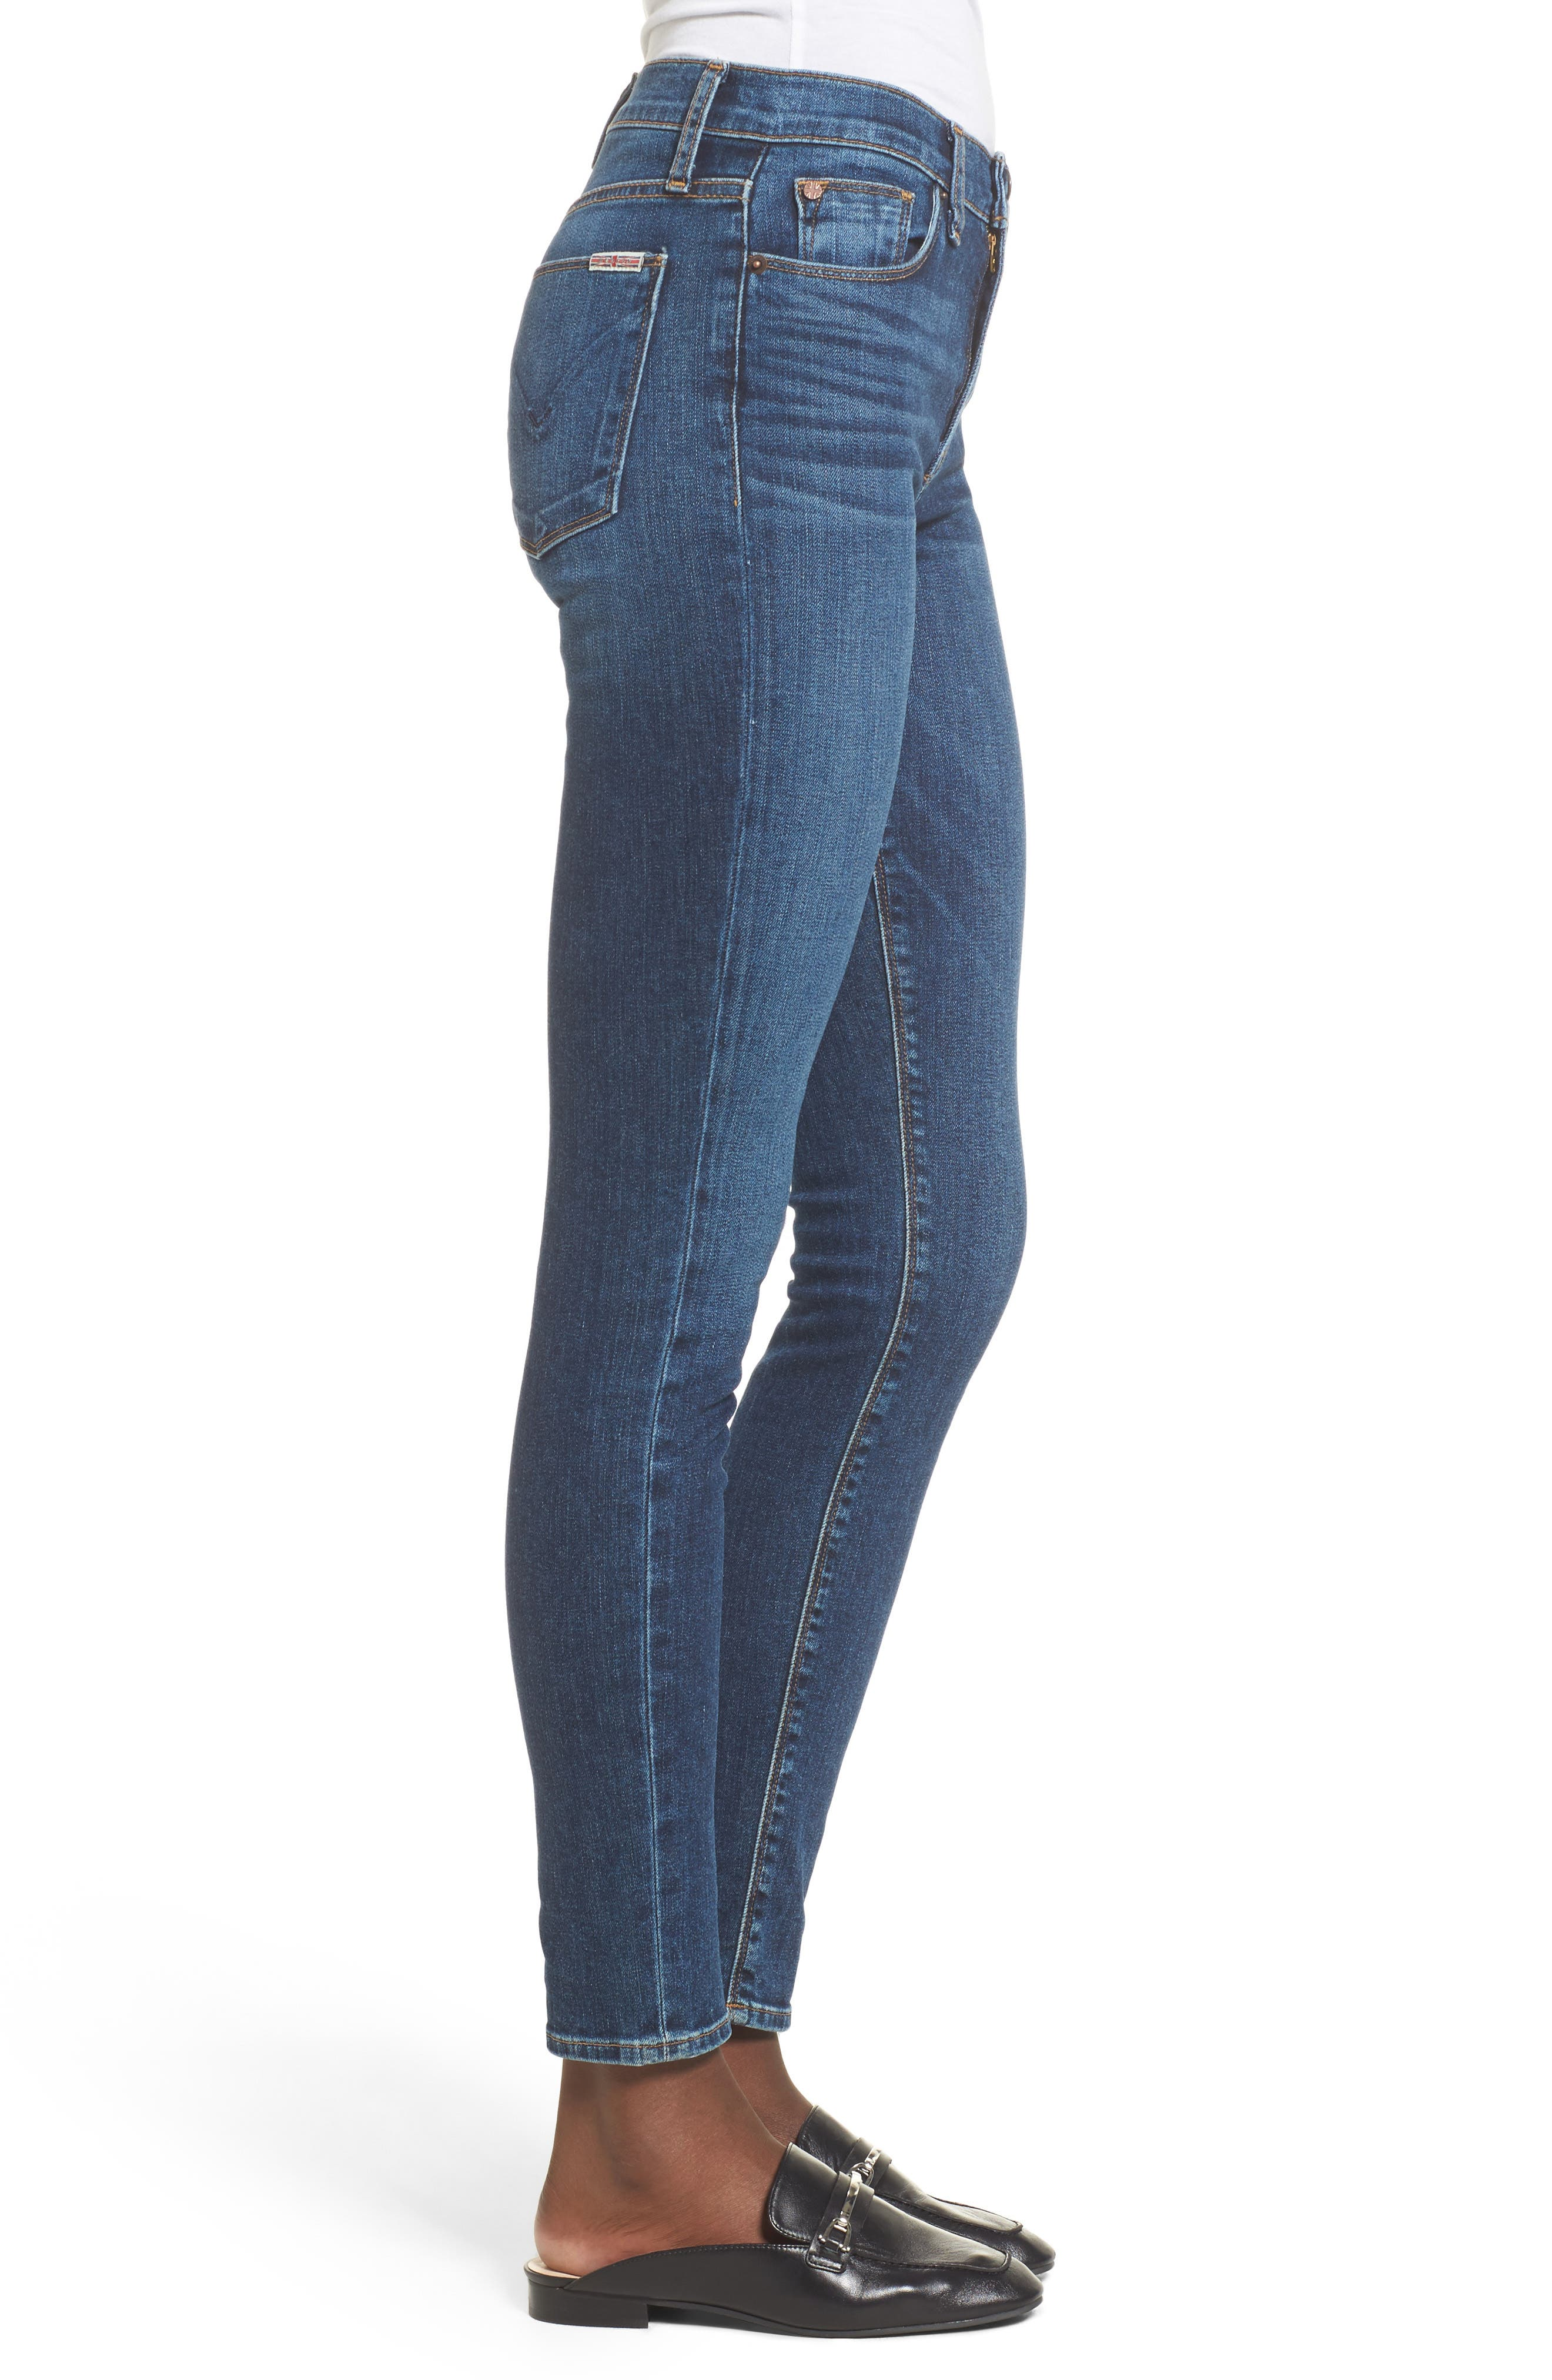 Barbara High Waist Super Skinny Jeans,                             Alternate thumbnail 3, color,                             Realism